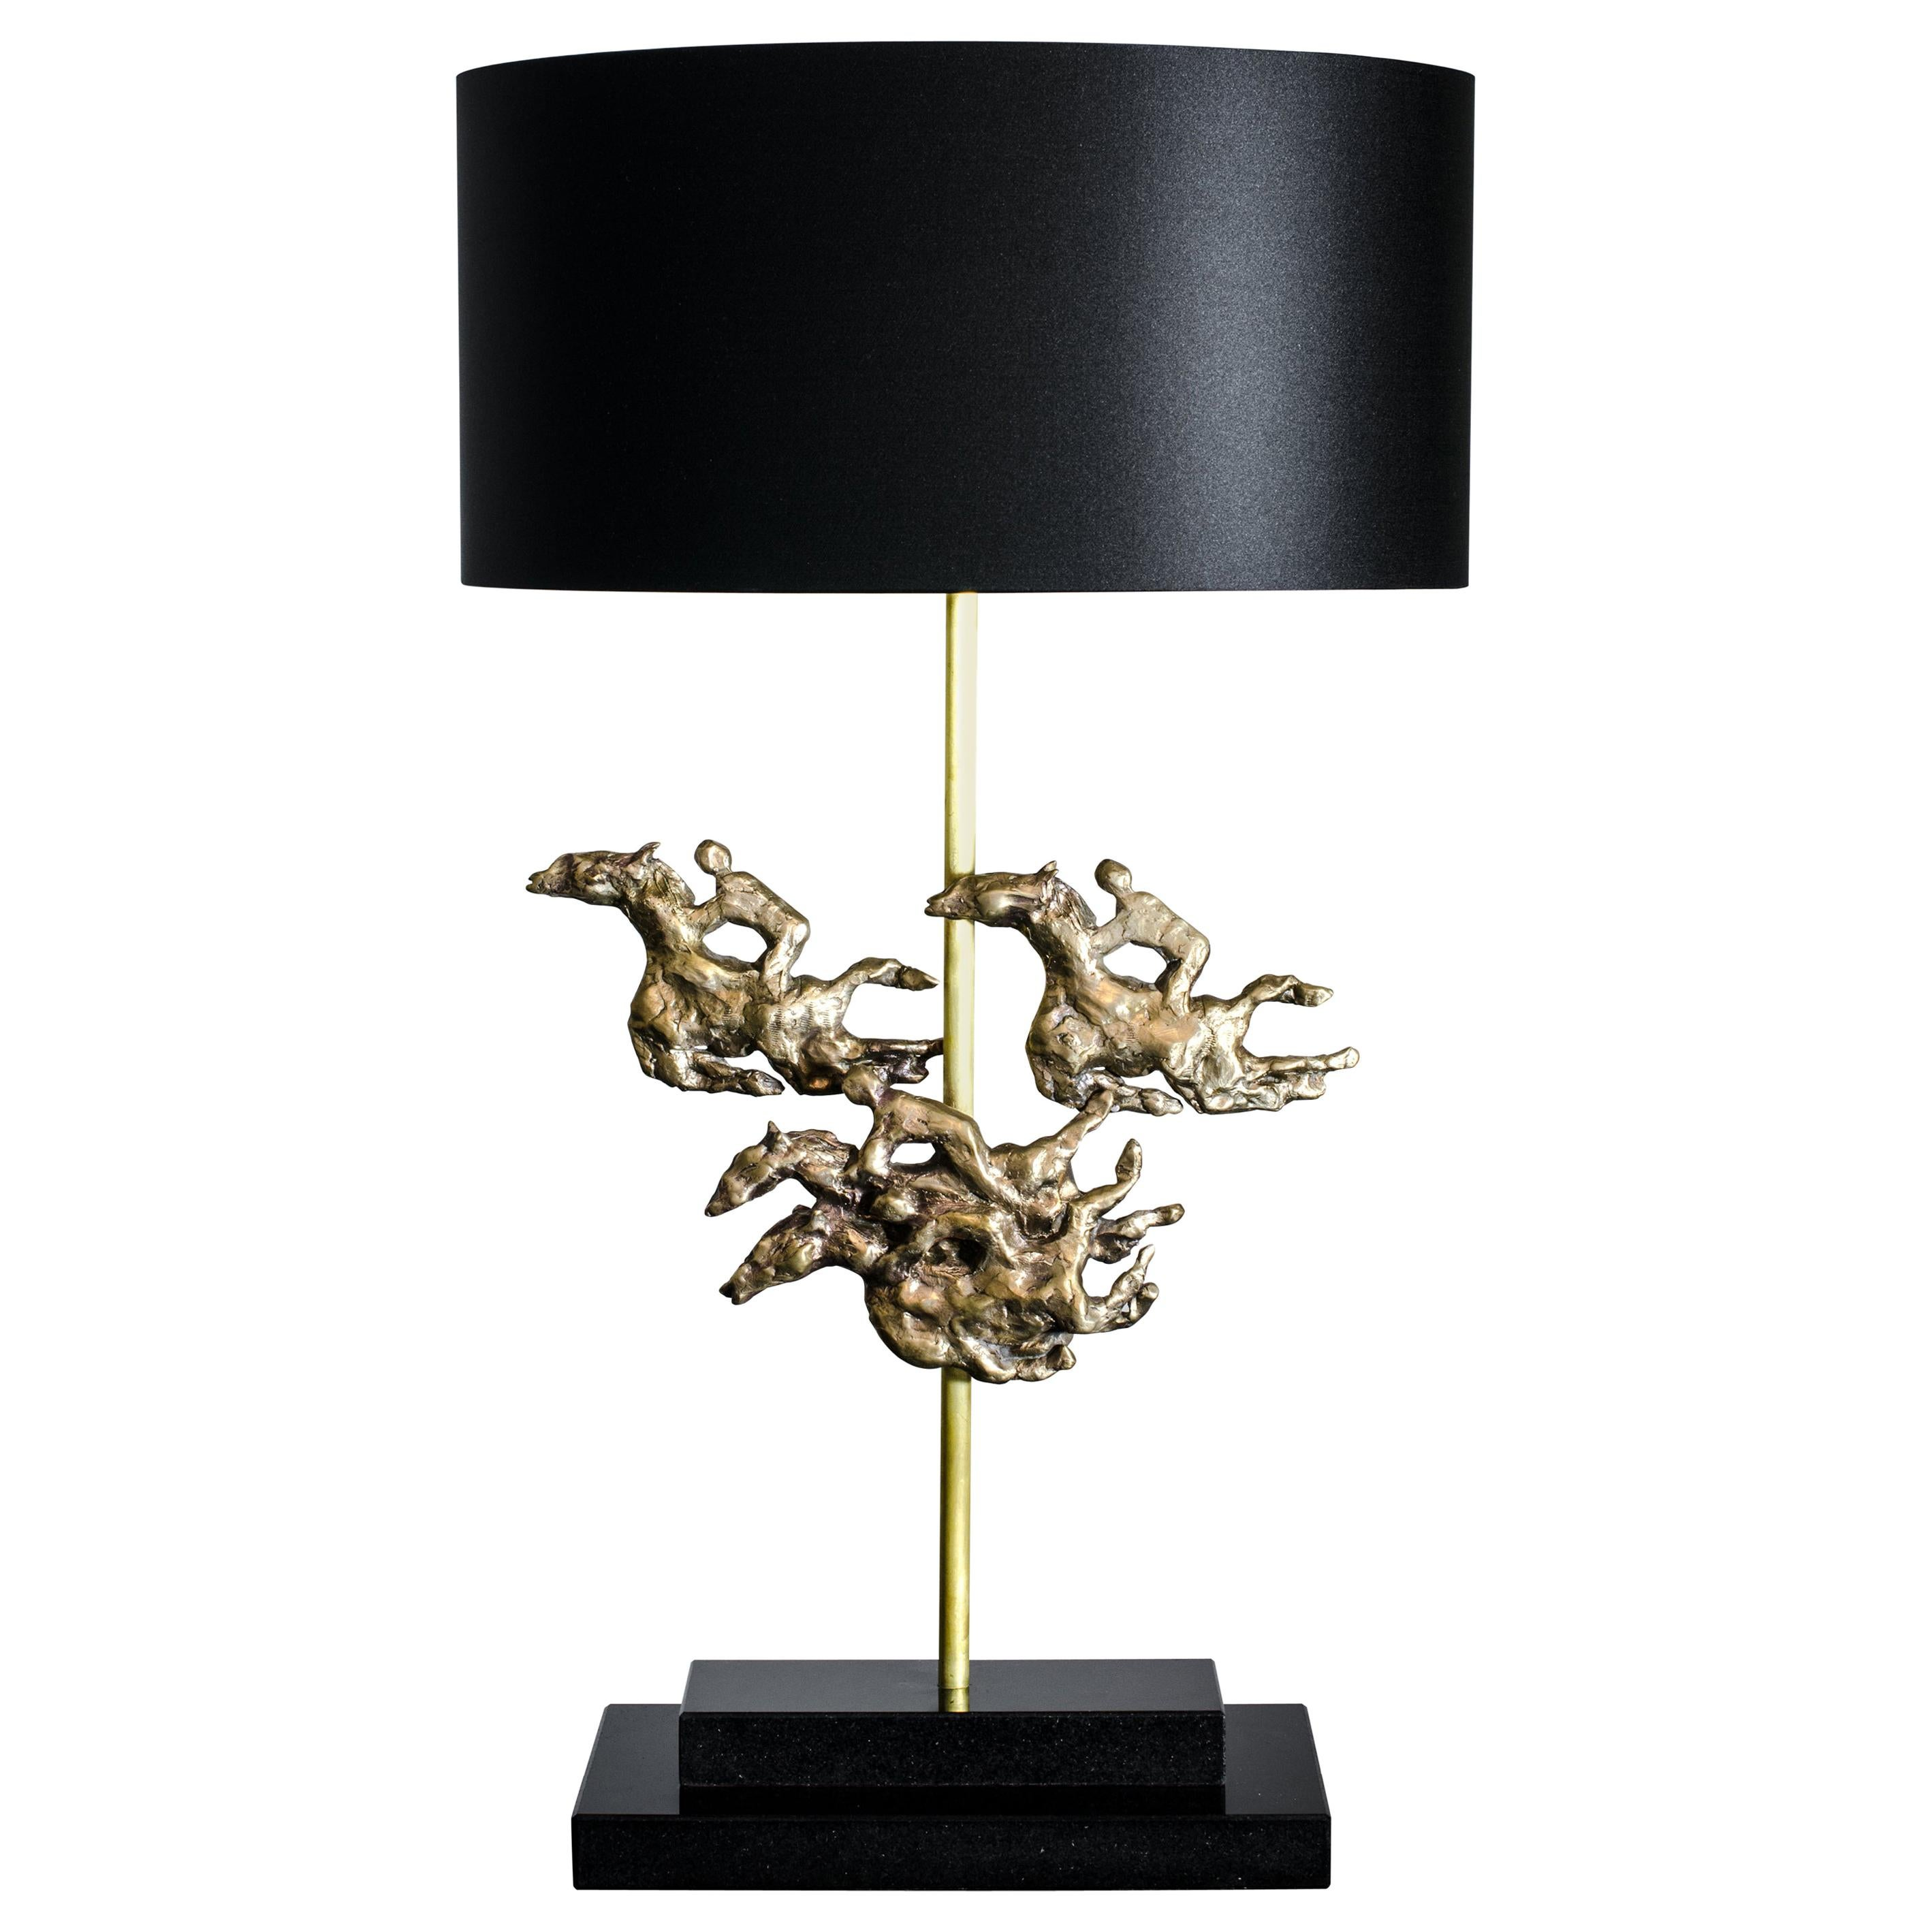 'Ascot' - One of a kind bronze table lamp